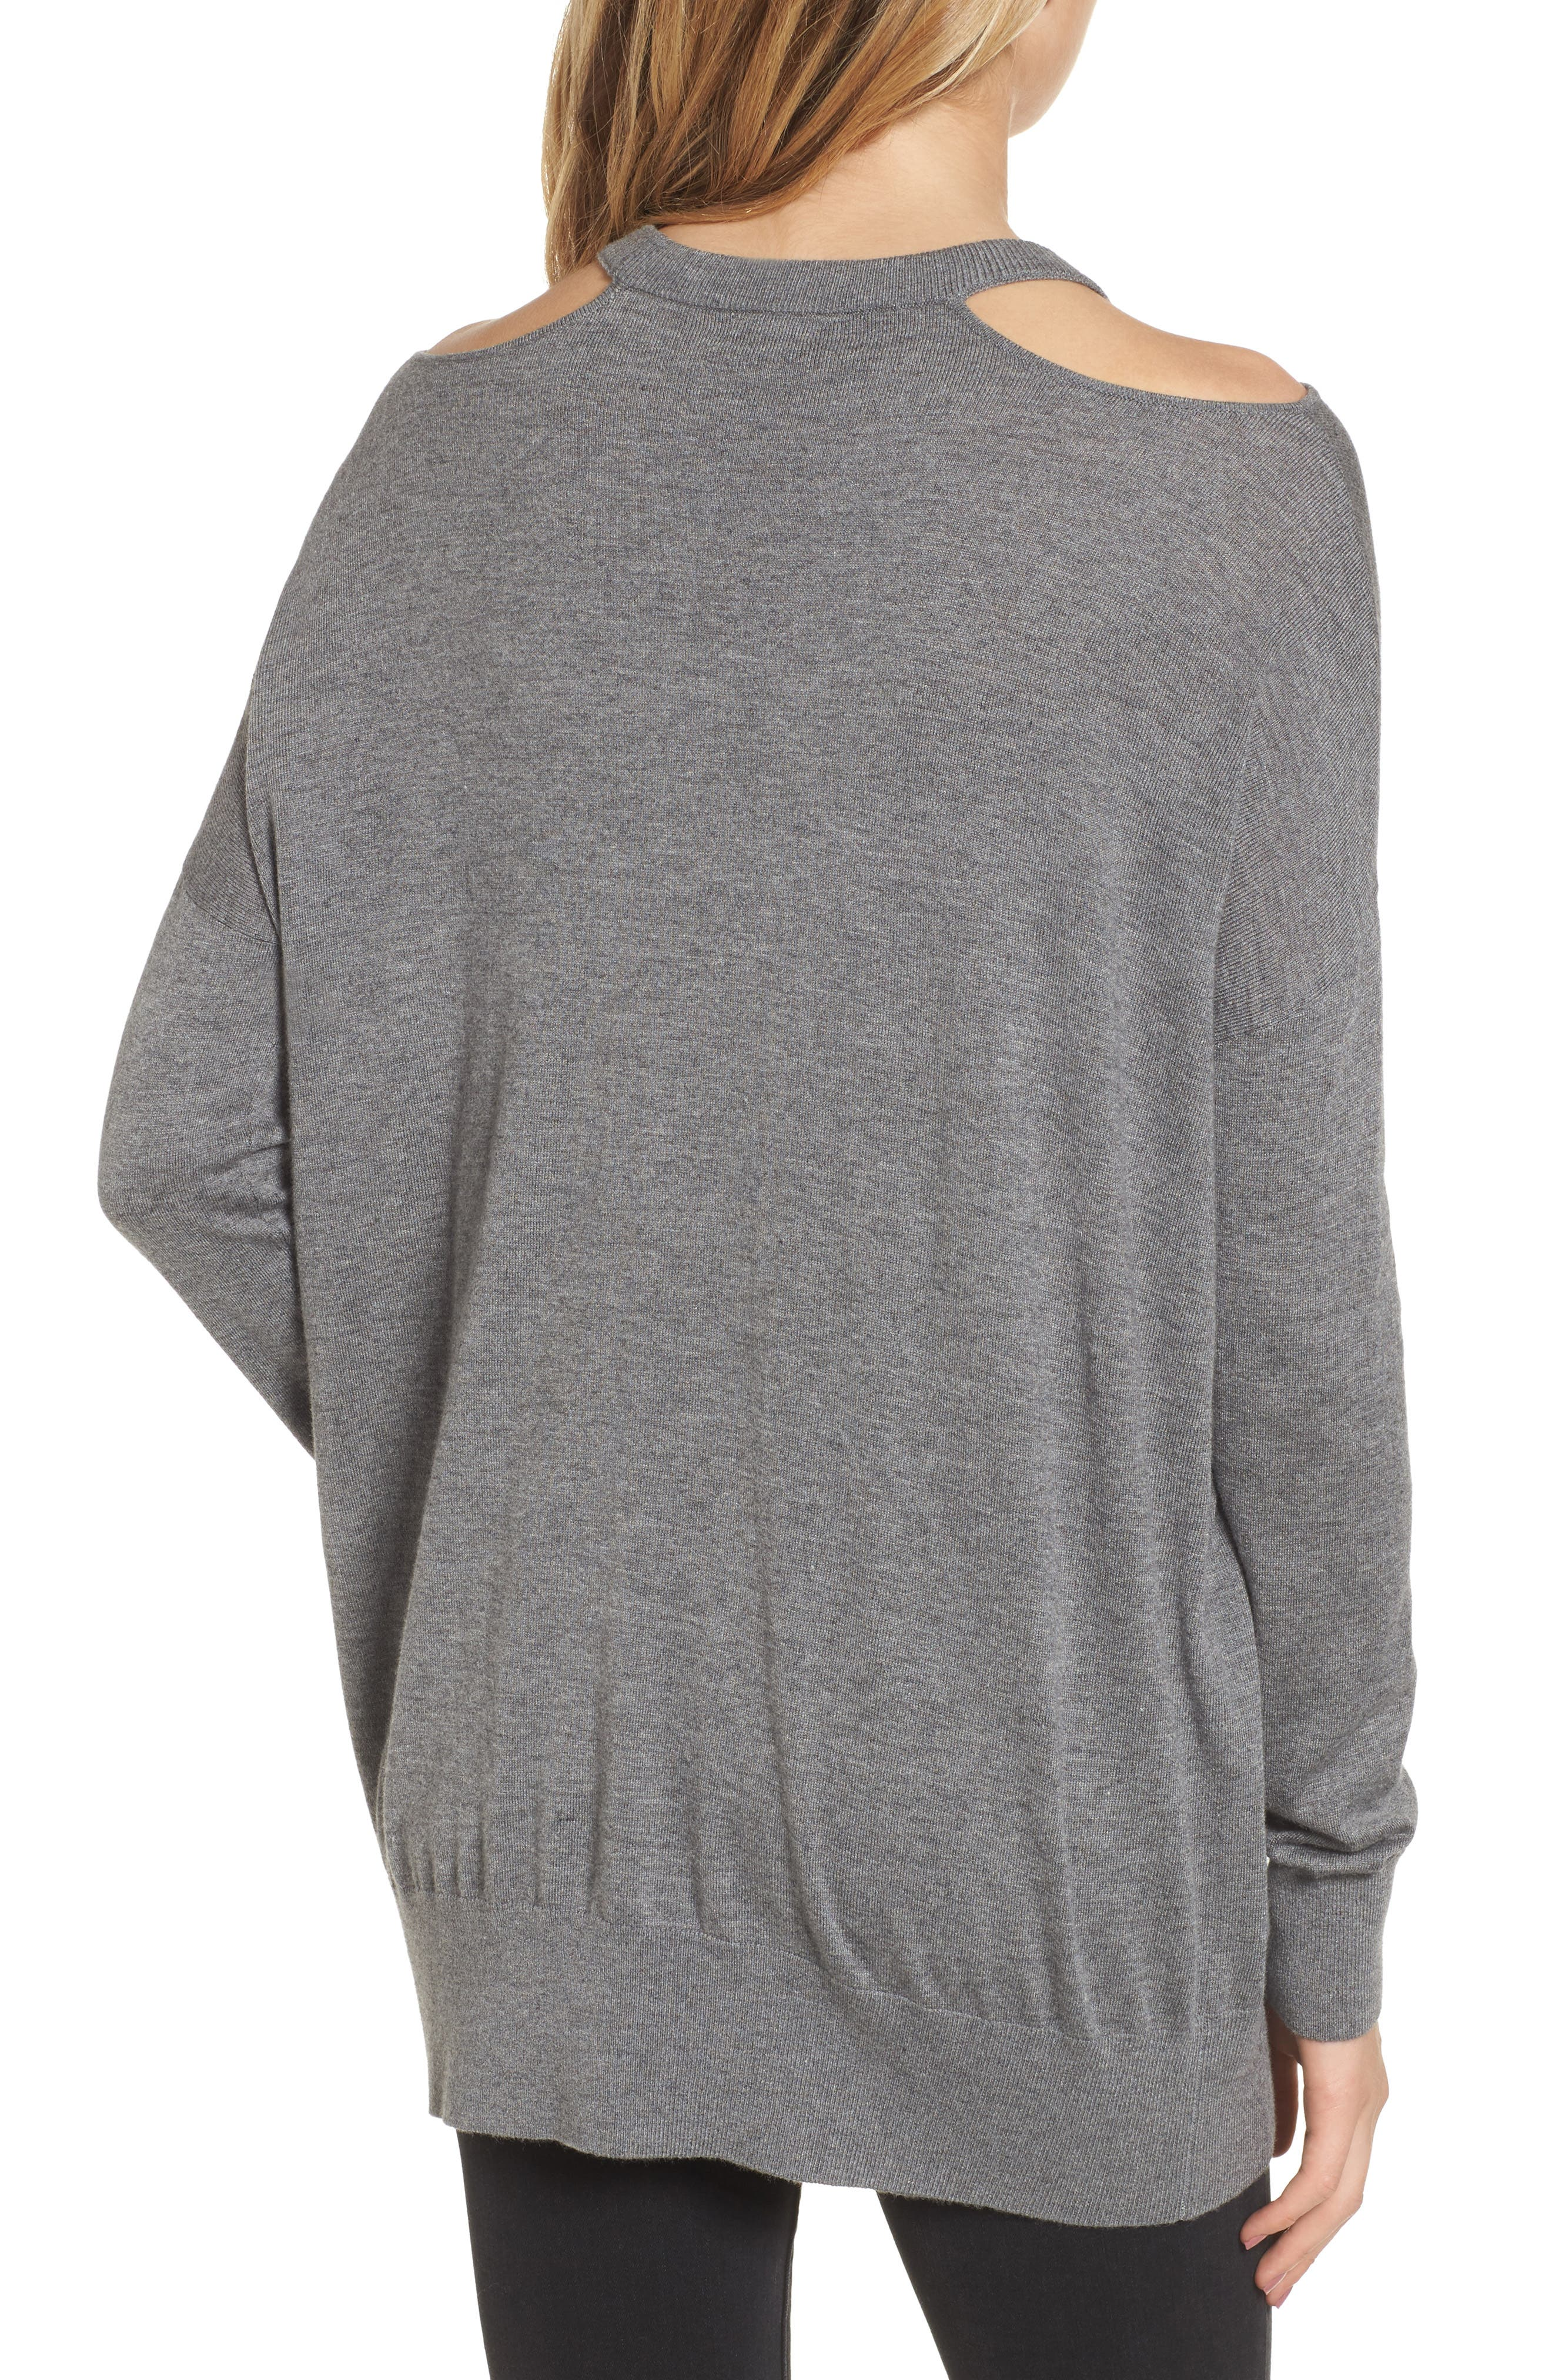 Canarise Cutout Sweater,                             Alternate thumbnail 2, color,                             039